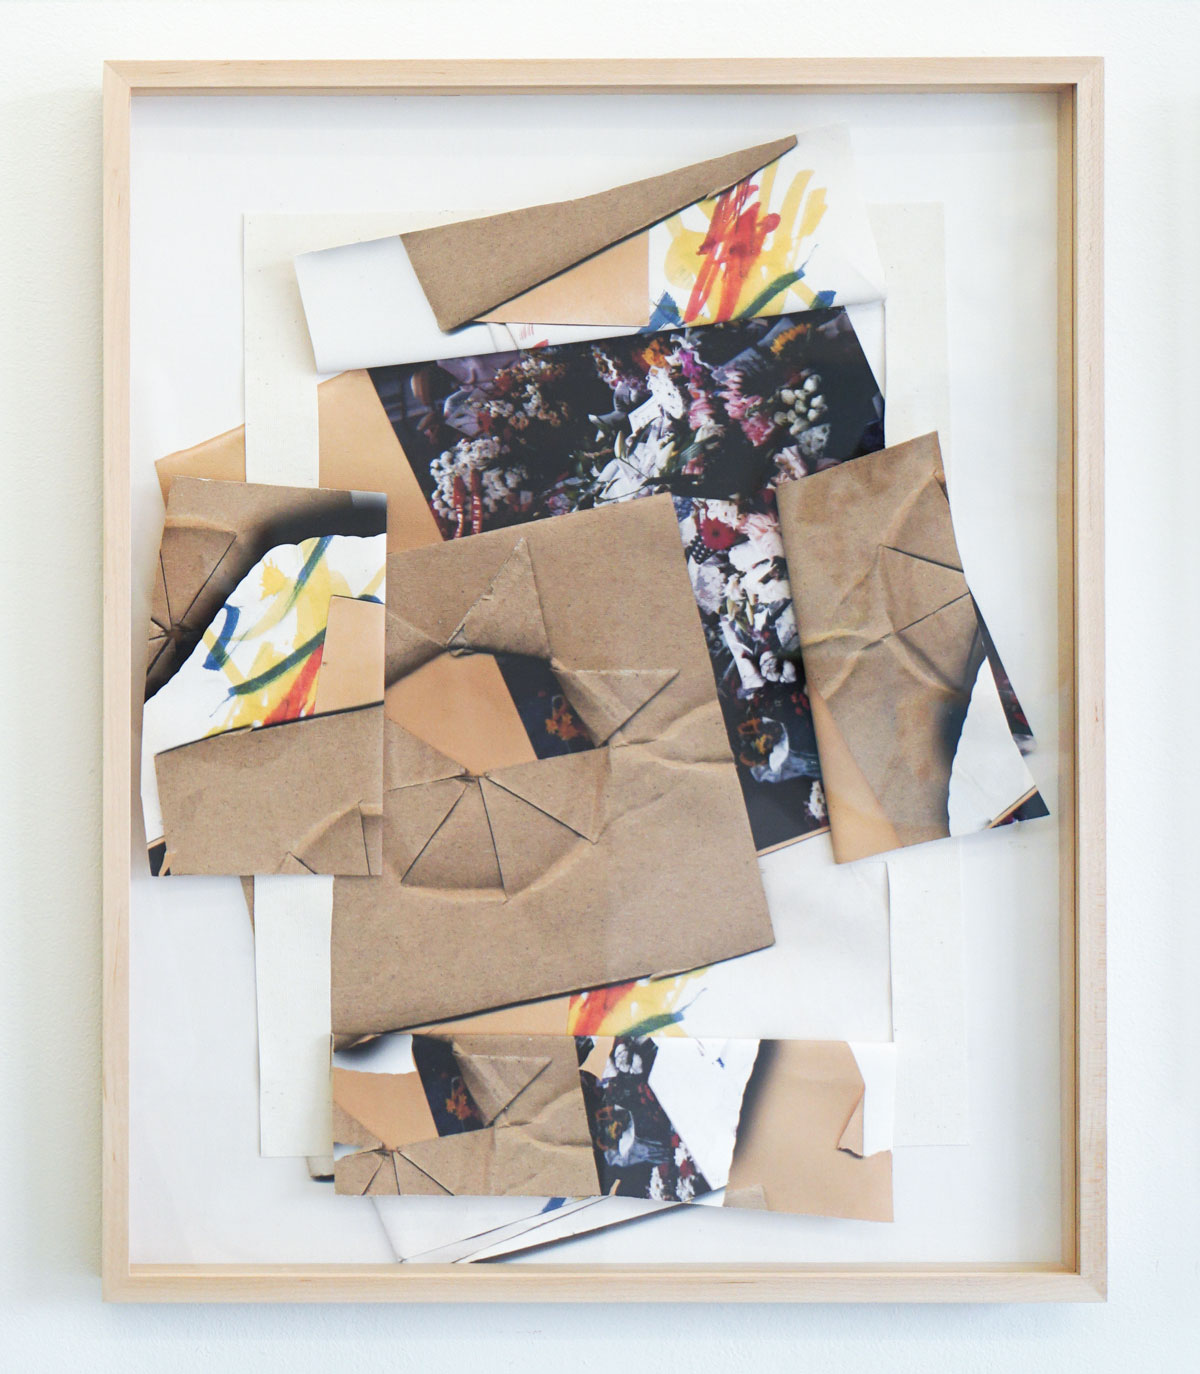 Light wood frame around a mixed media work, collaged images of brown paper cut and folded in a star pattern, childlike marker drawings and a photograph.